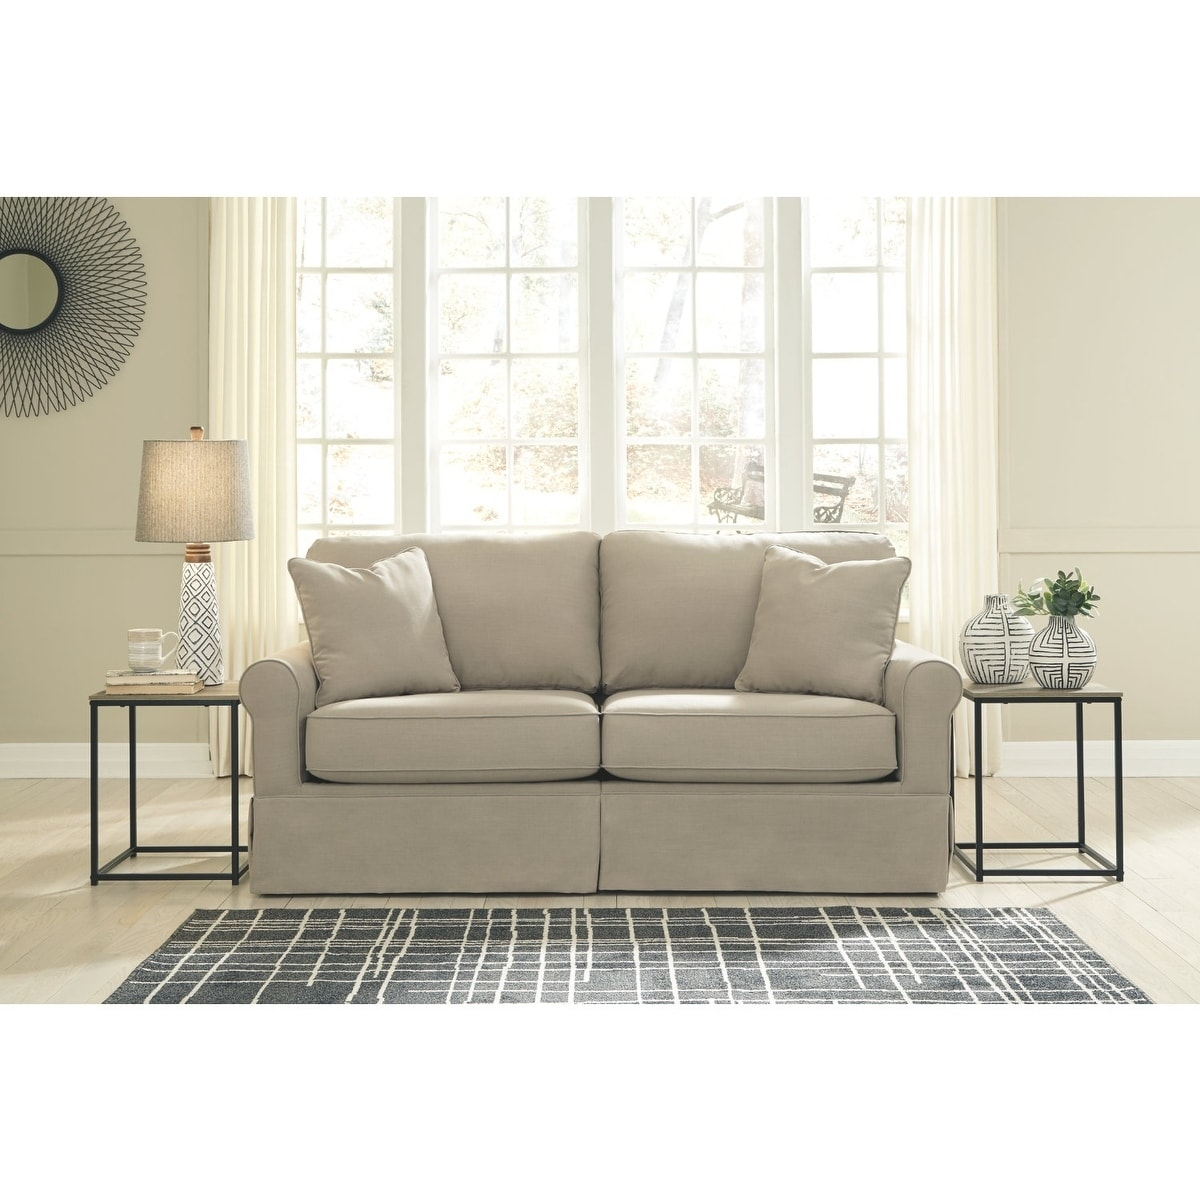 Retro Sofa Shop Buy Vintage Sofas Couches Online At Overstock Our Best Living